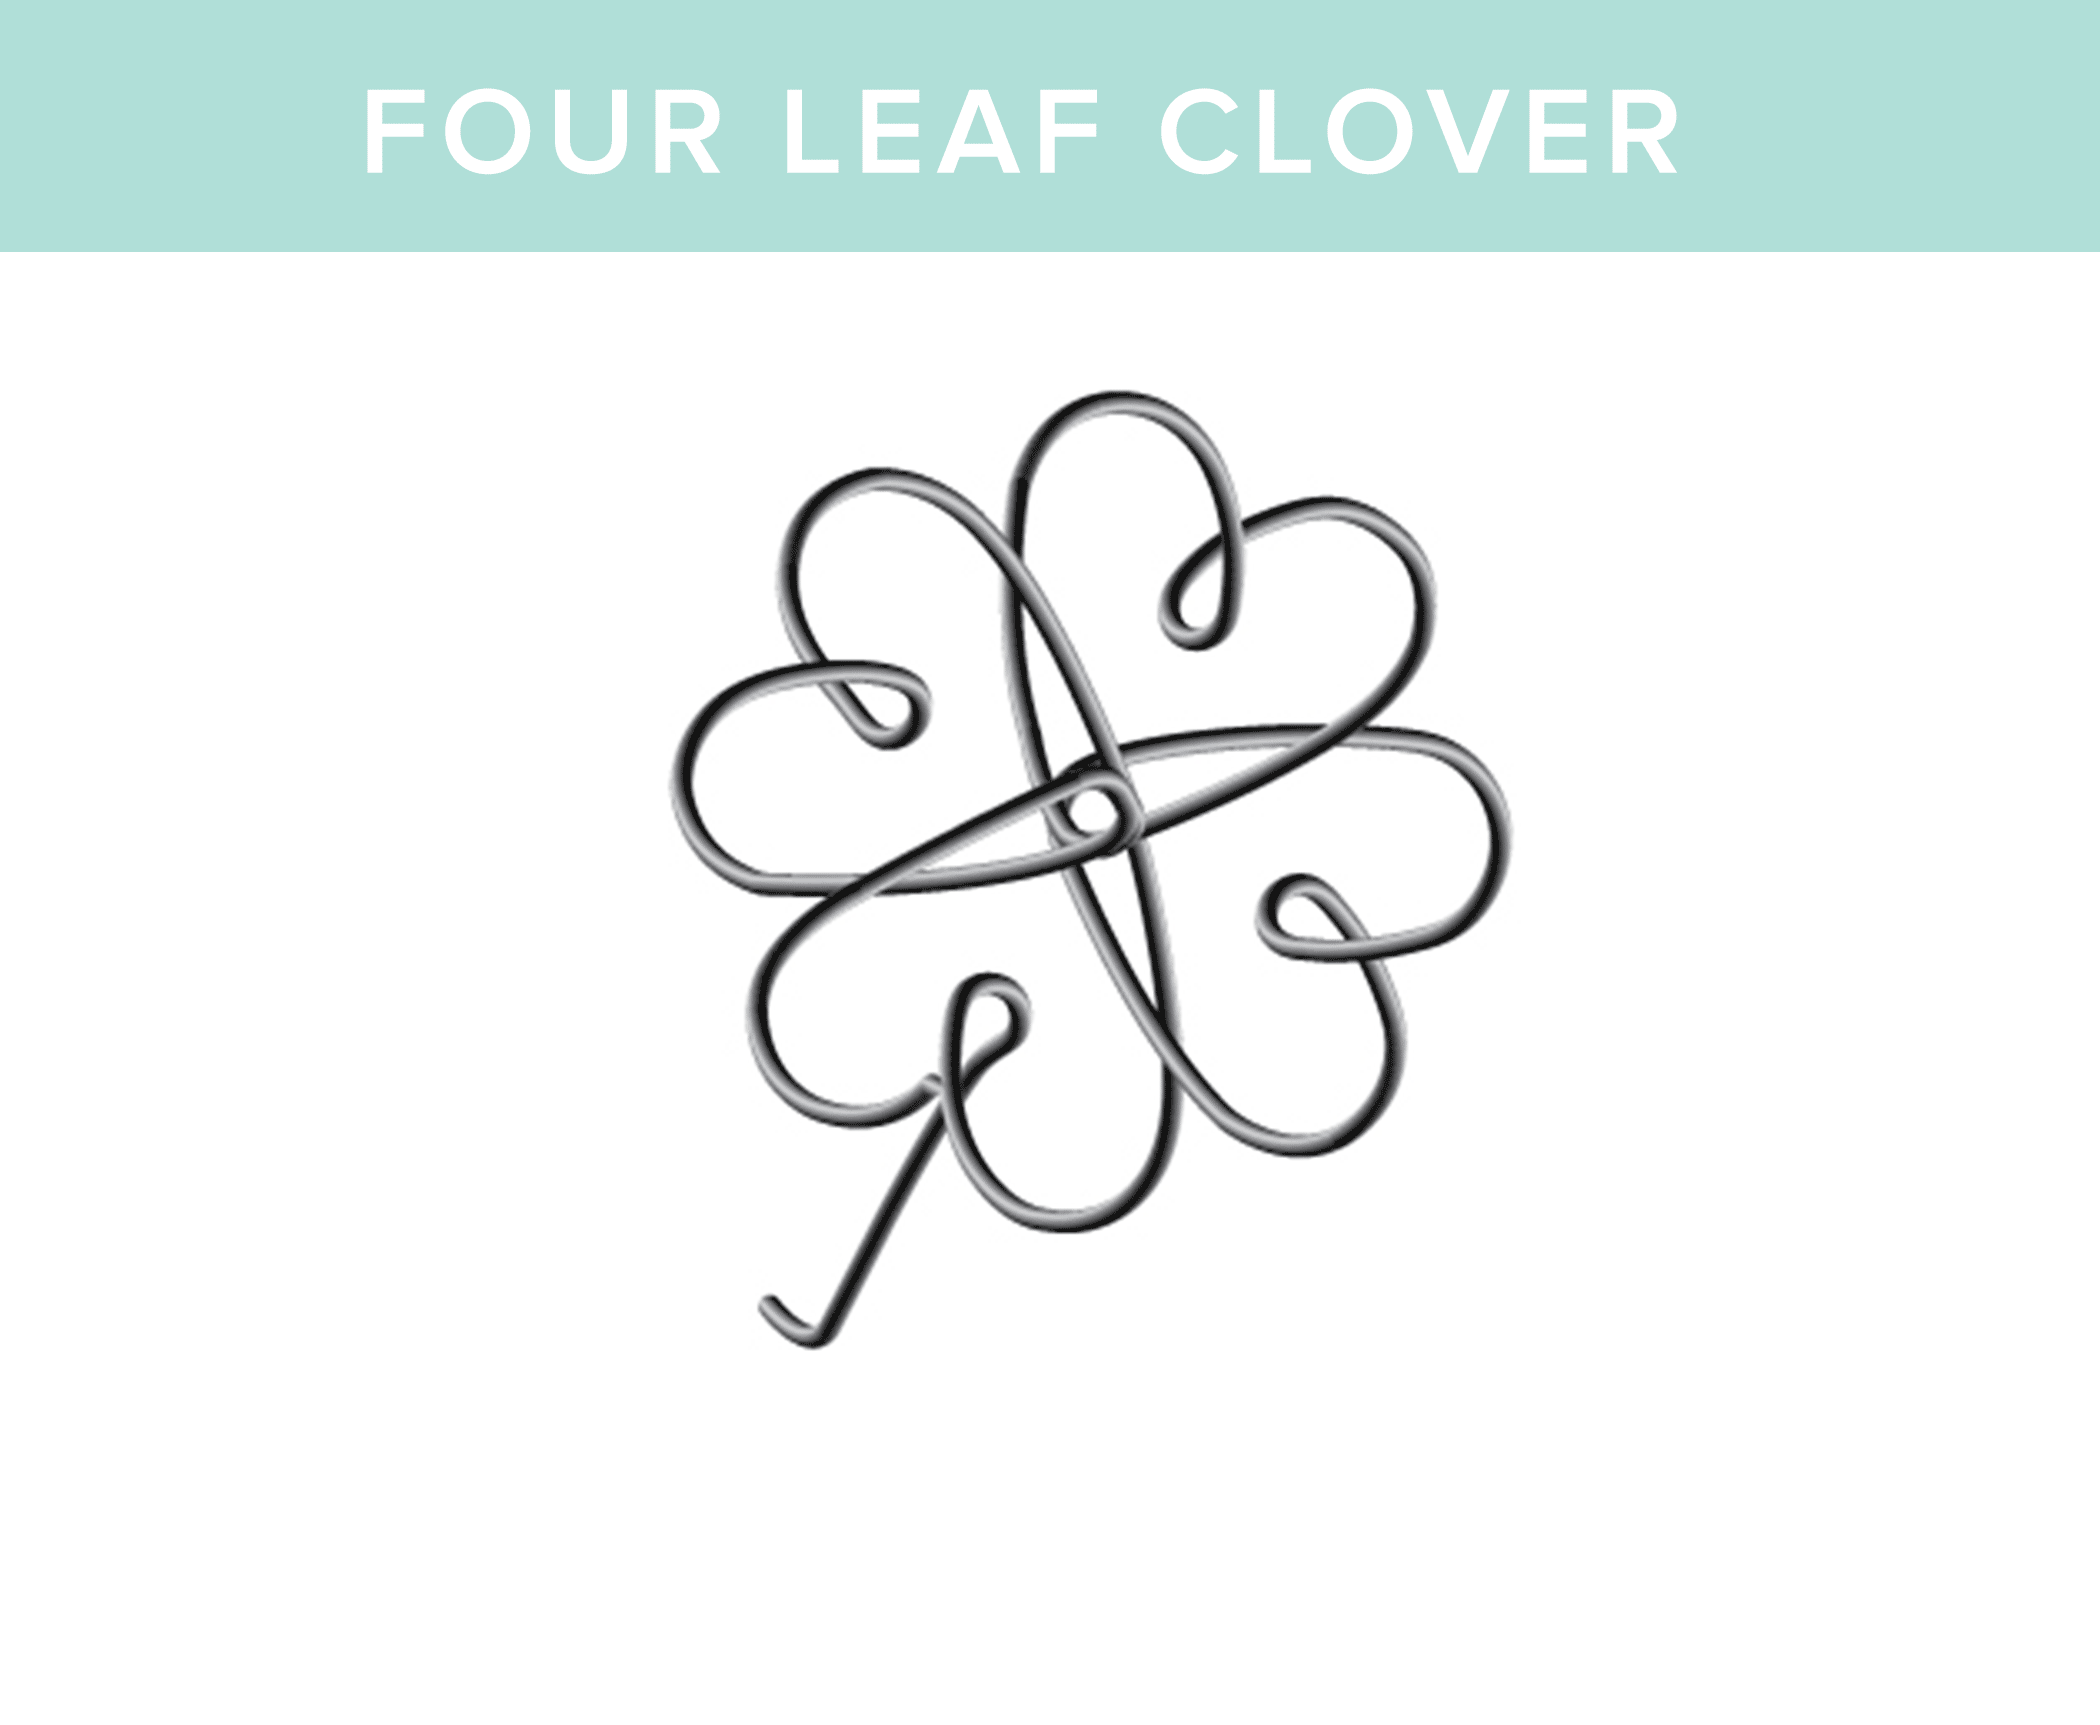 Happy-Jig-Website-TemplateFour-leaf-clover